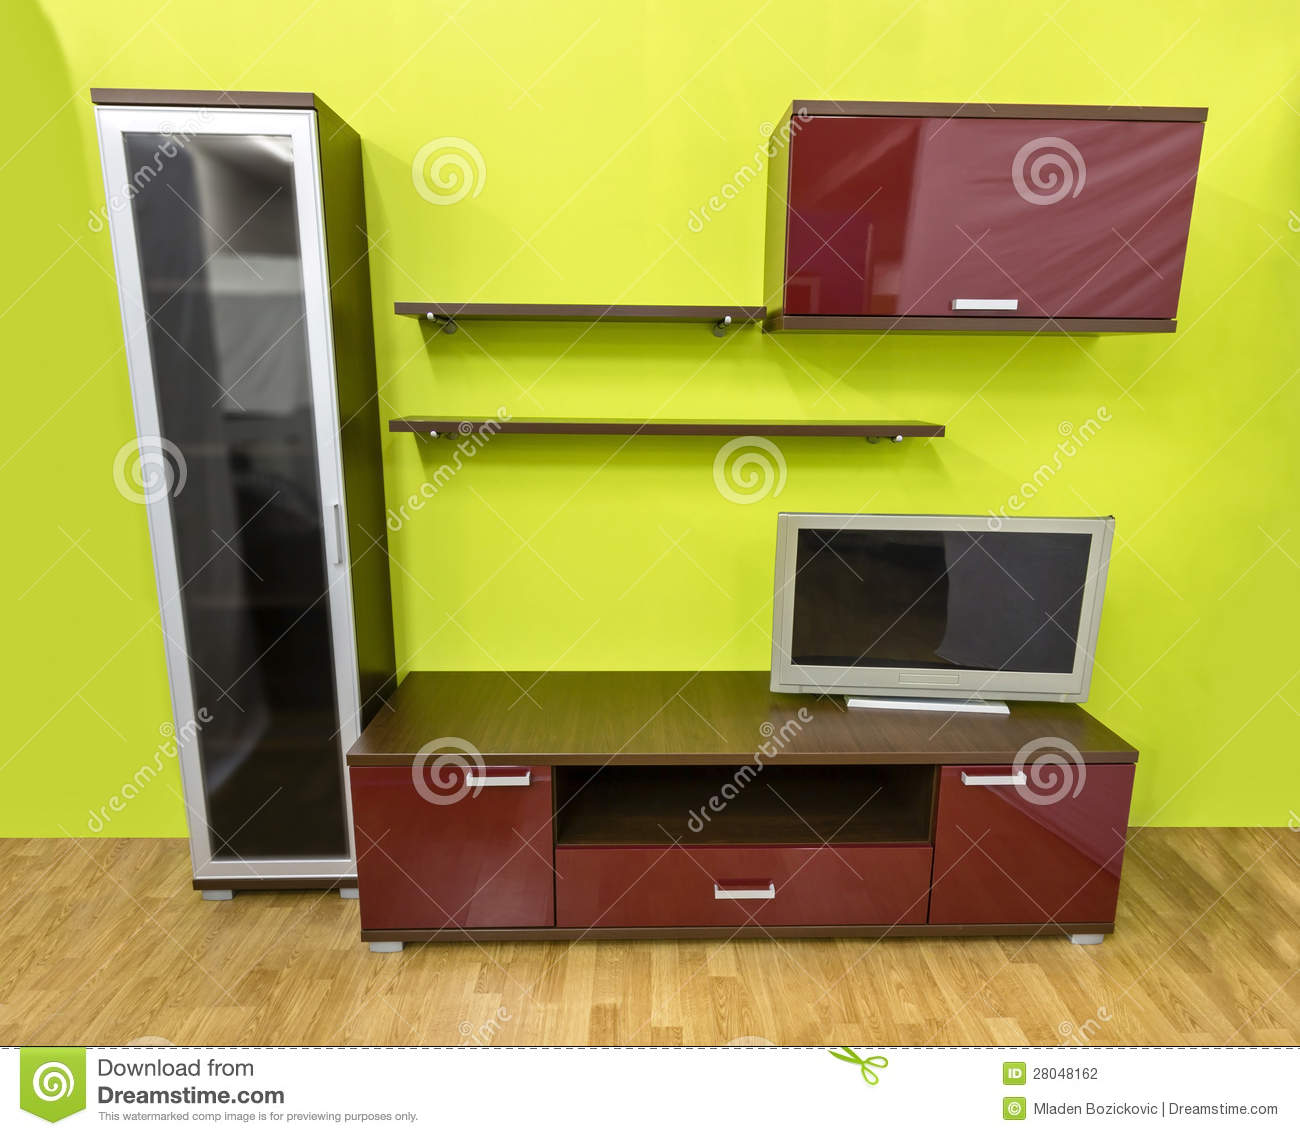 modern wall unit stock images - image: 27970094